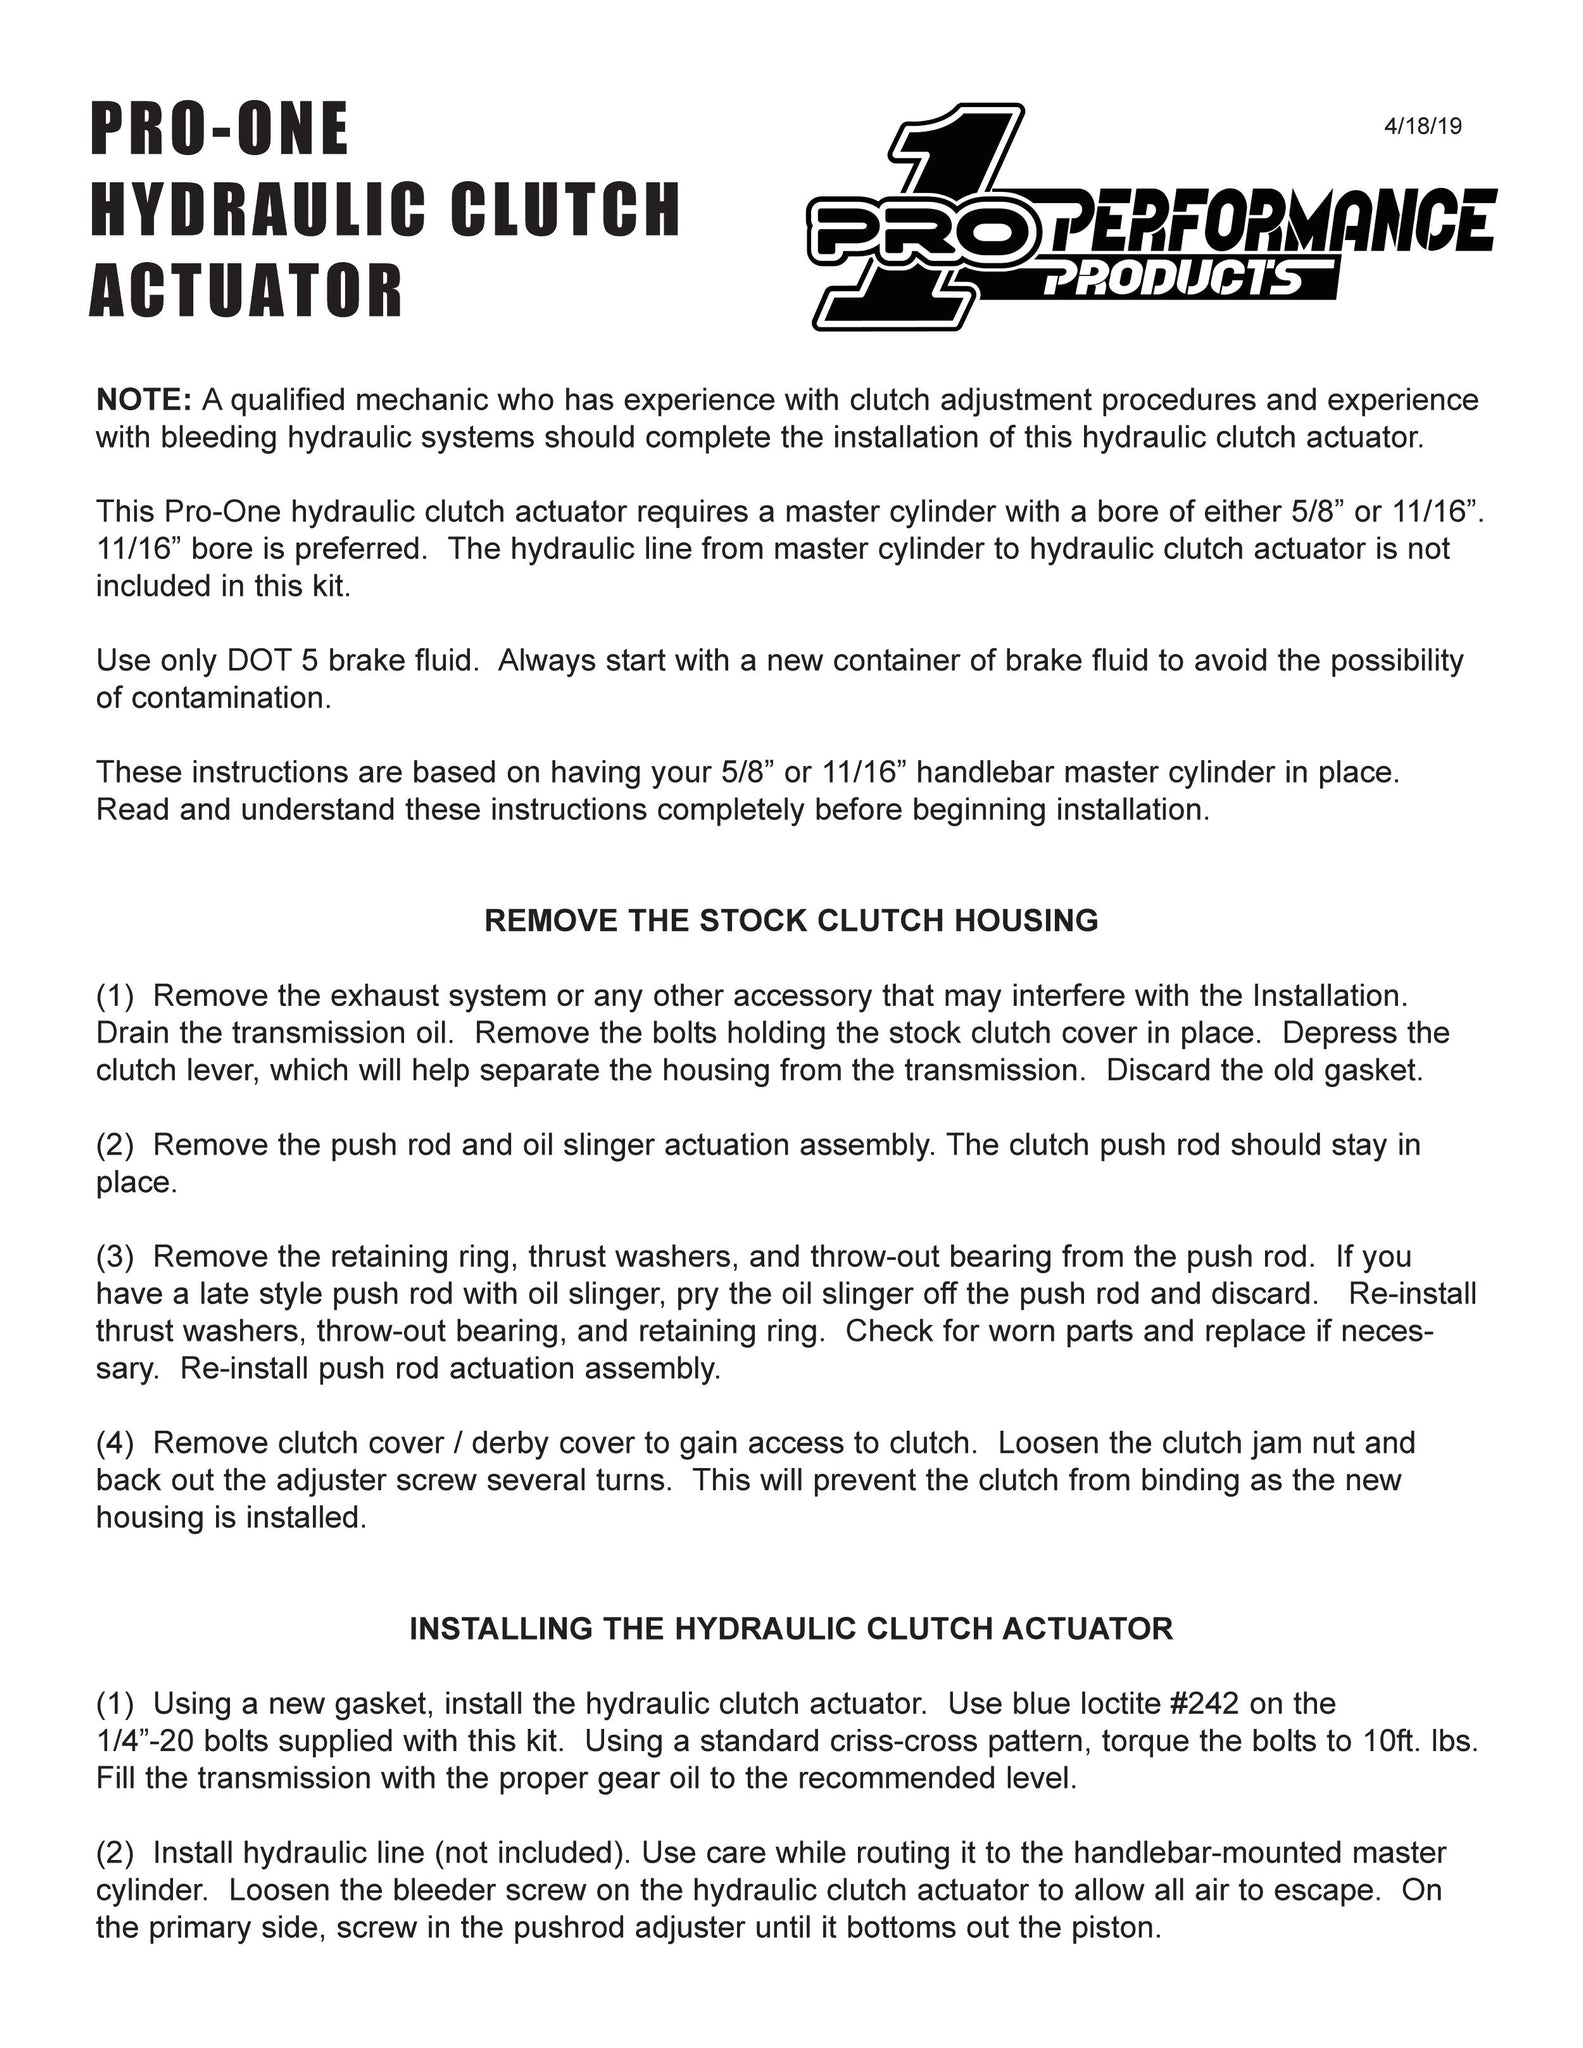 Pro-One Performance Hydraulic Clutch Actuator Instructions , 202240, 202240B 202250